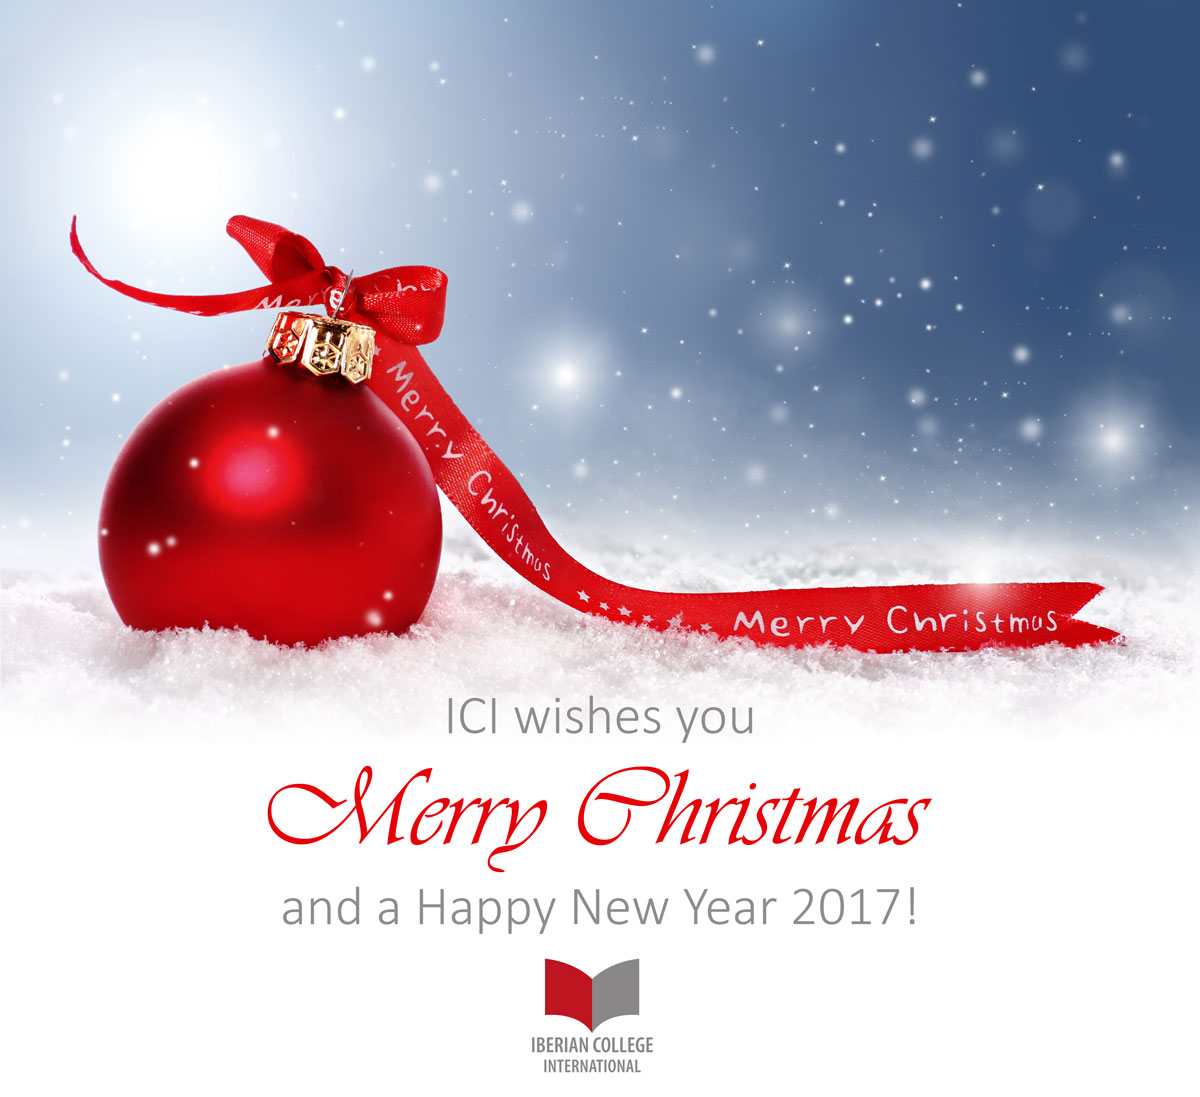 the ici team wishes merry christmas and a happy new year